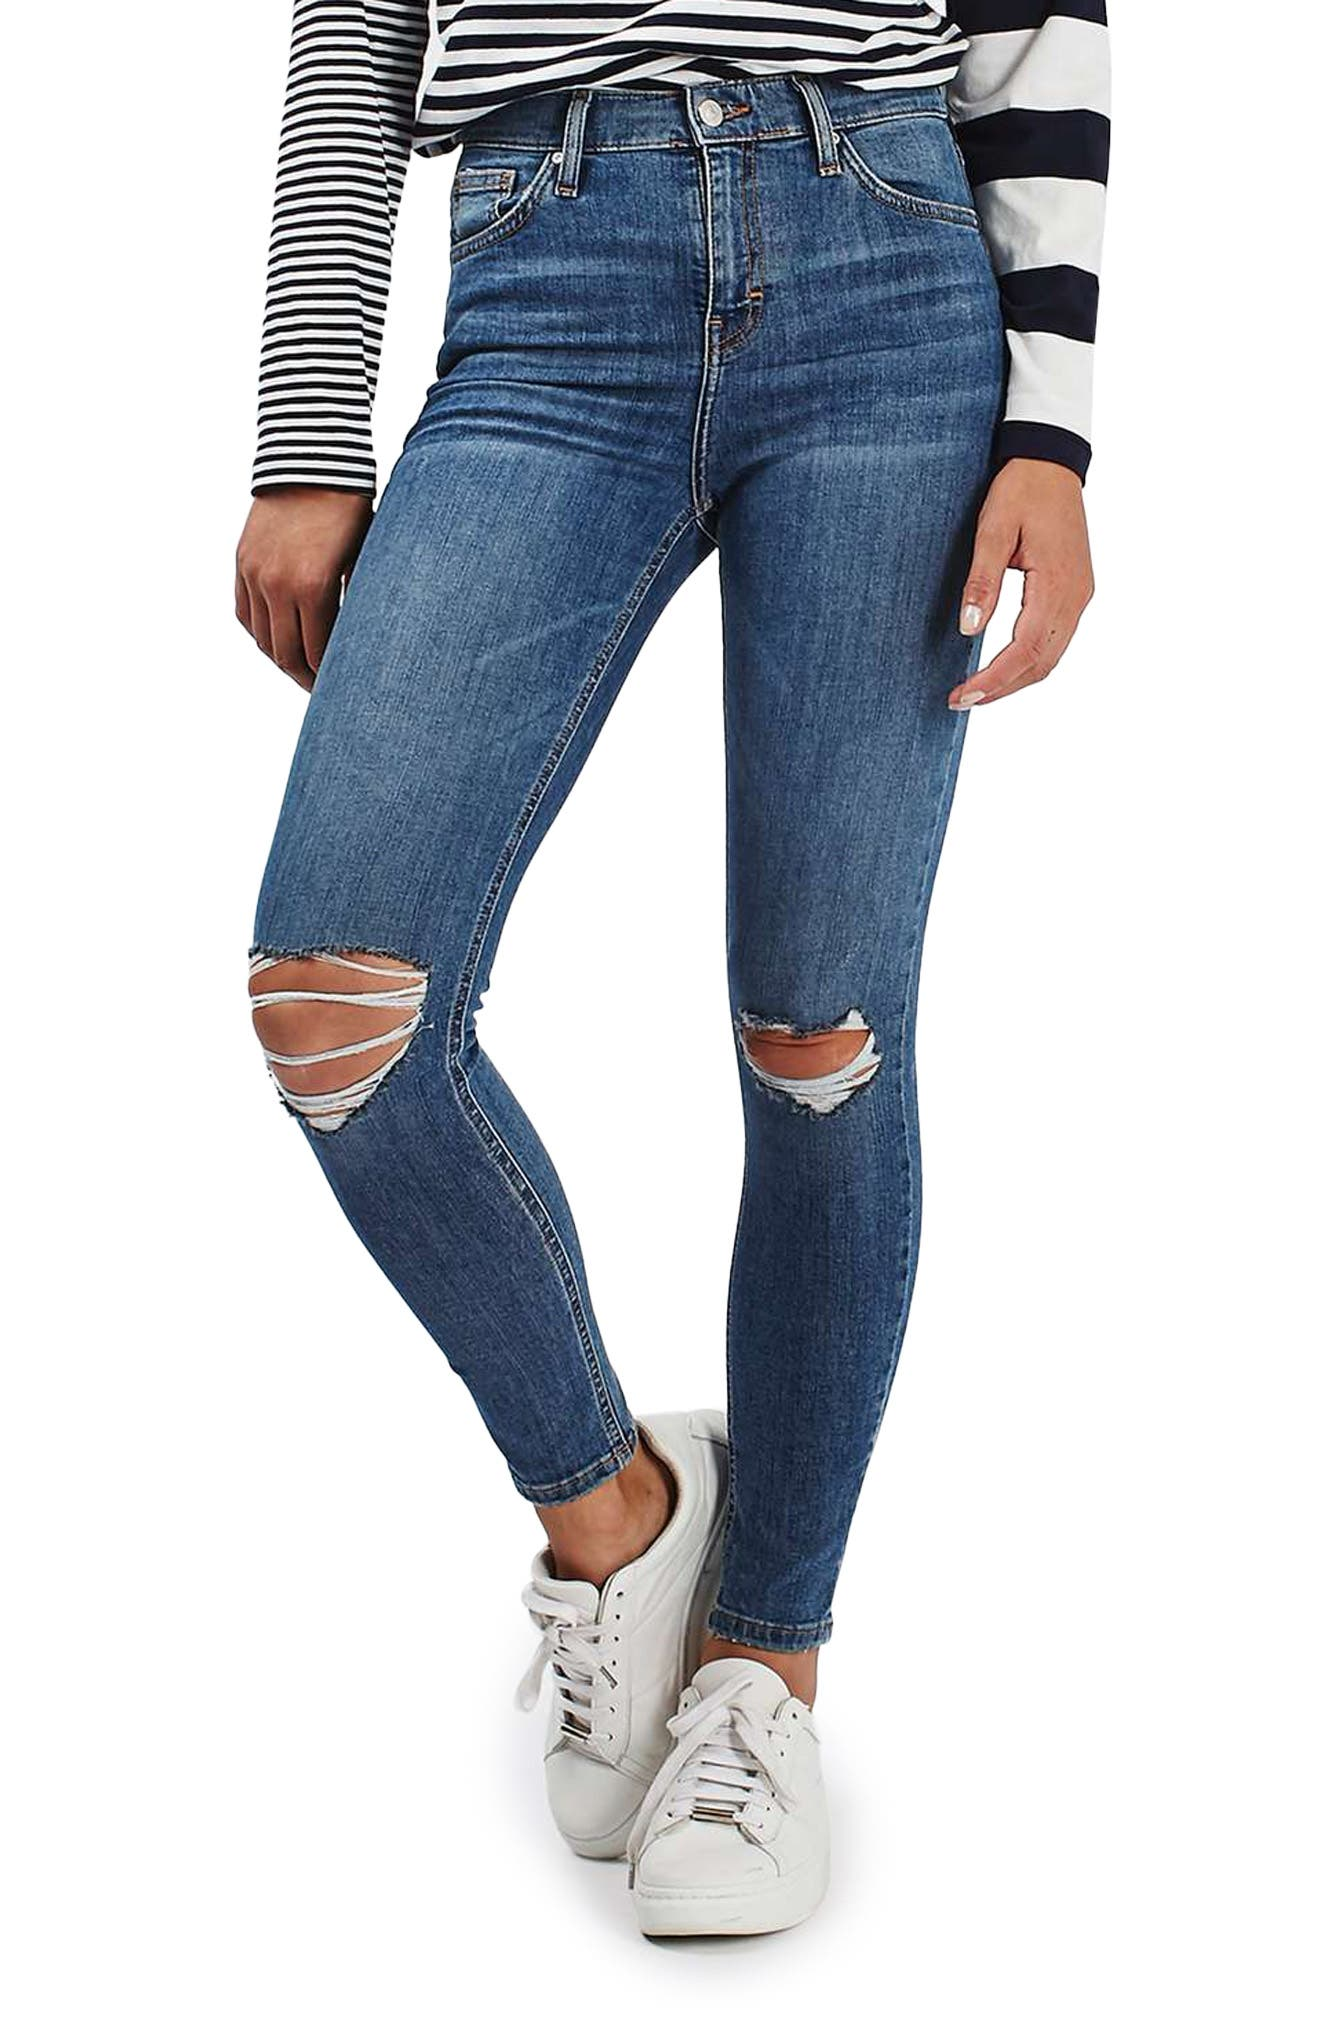 Alternate Image 1 Selected - Topshop Moto Jamie Ripped High Waist Ankle Skinny Jeans